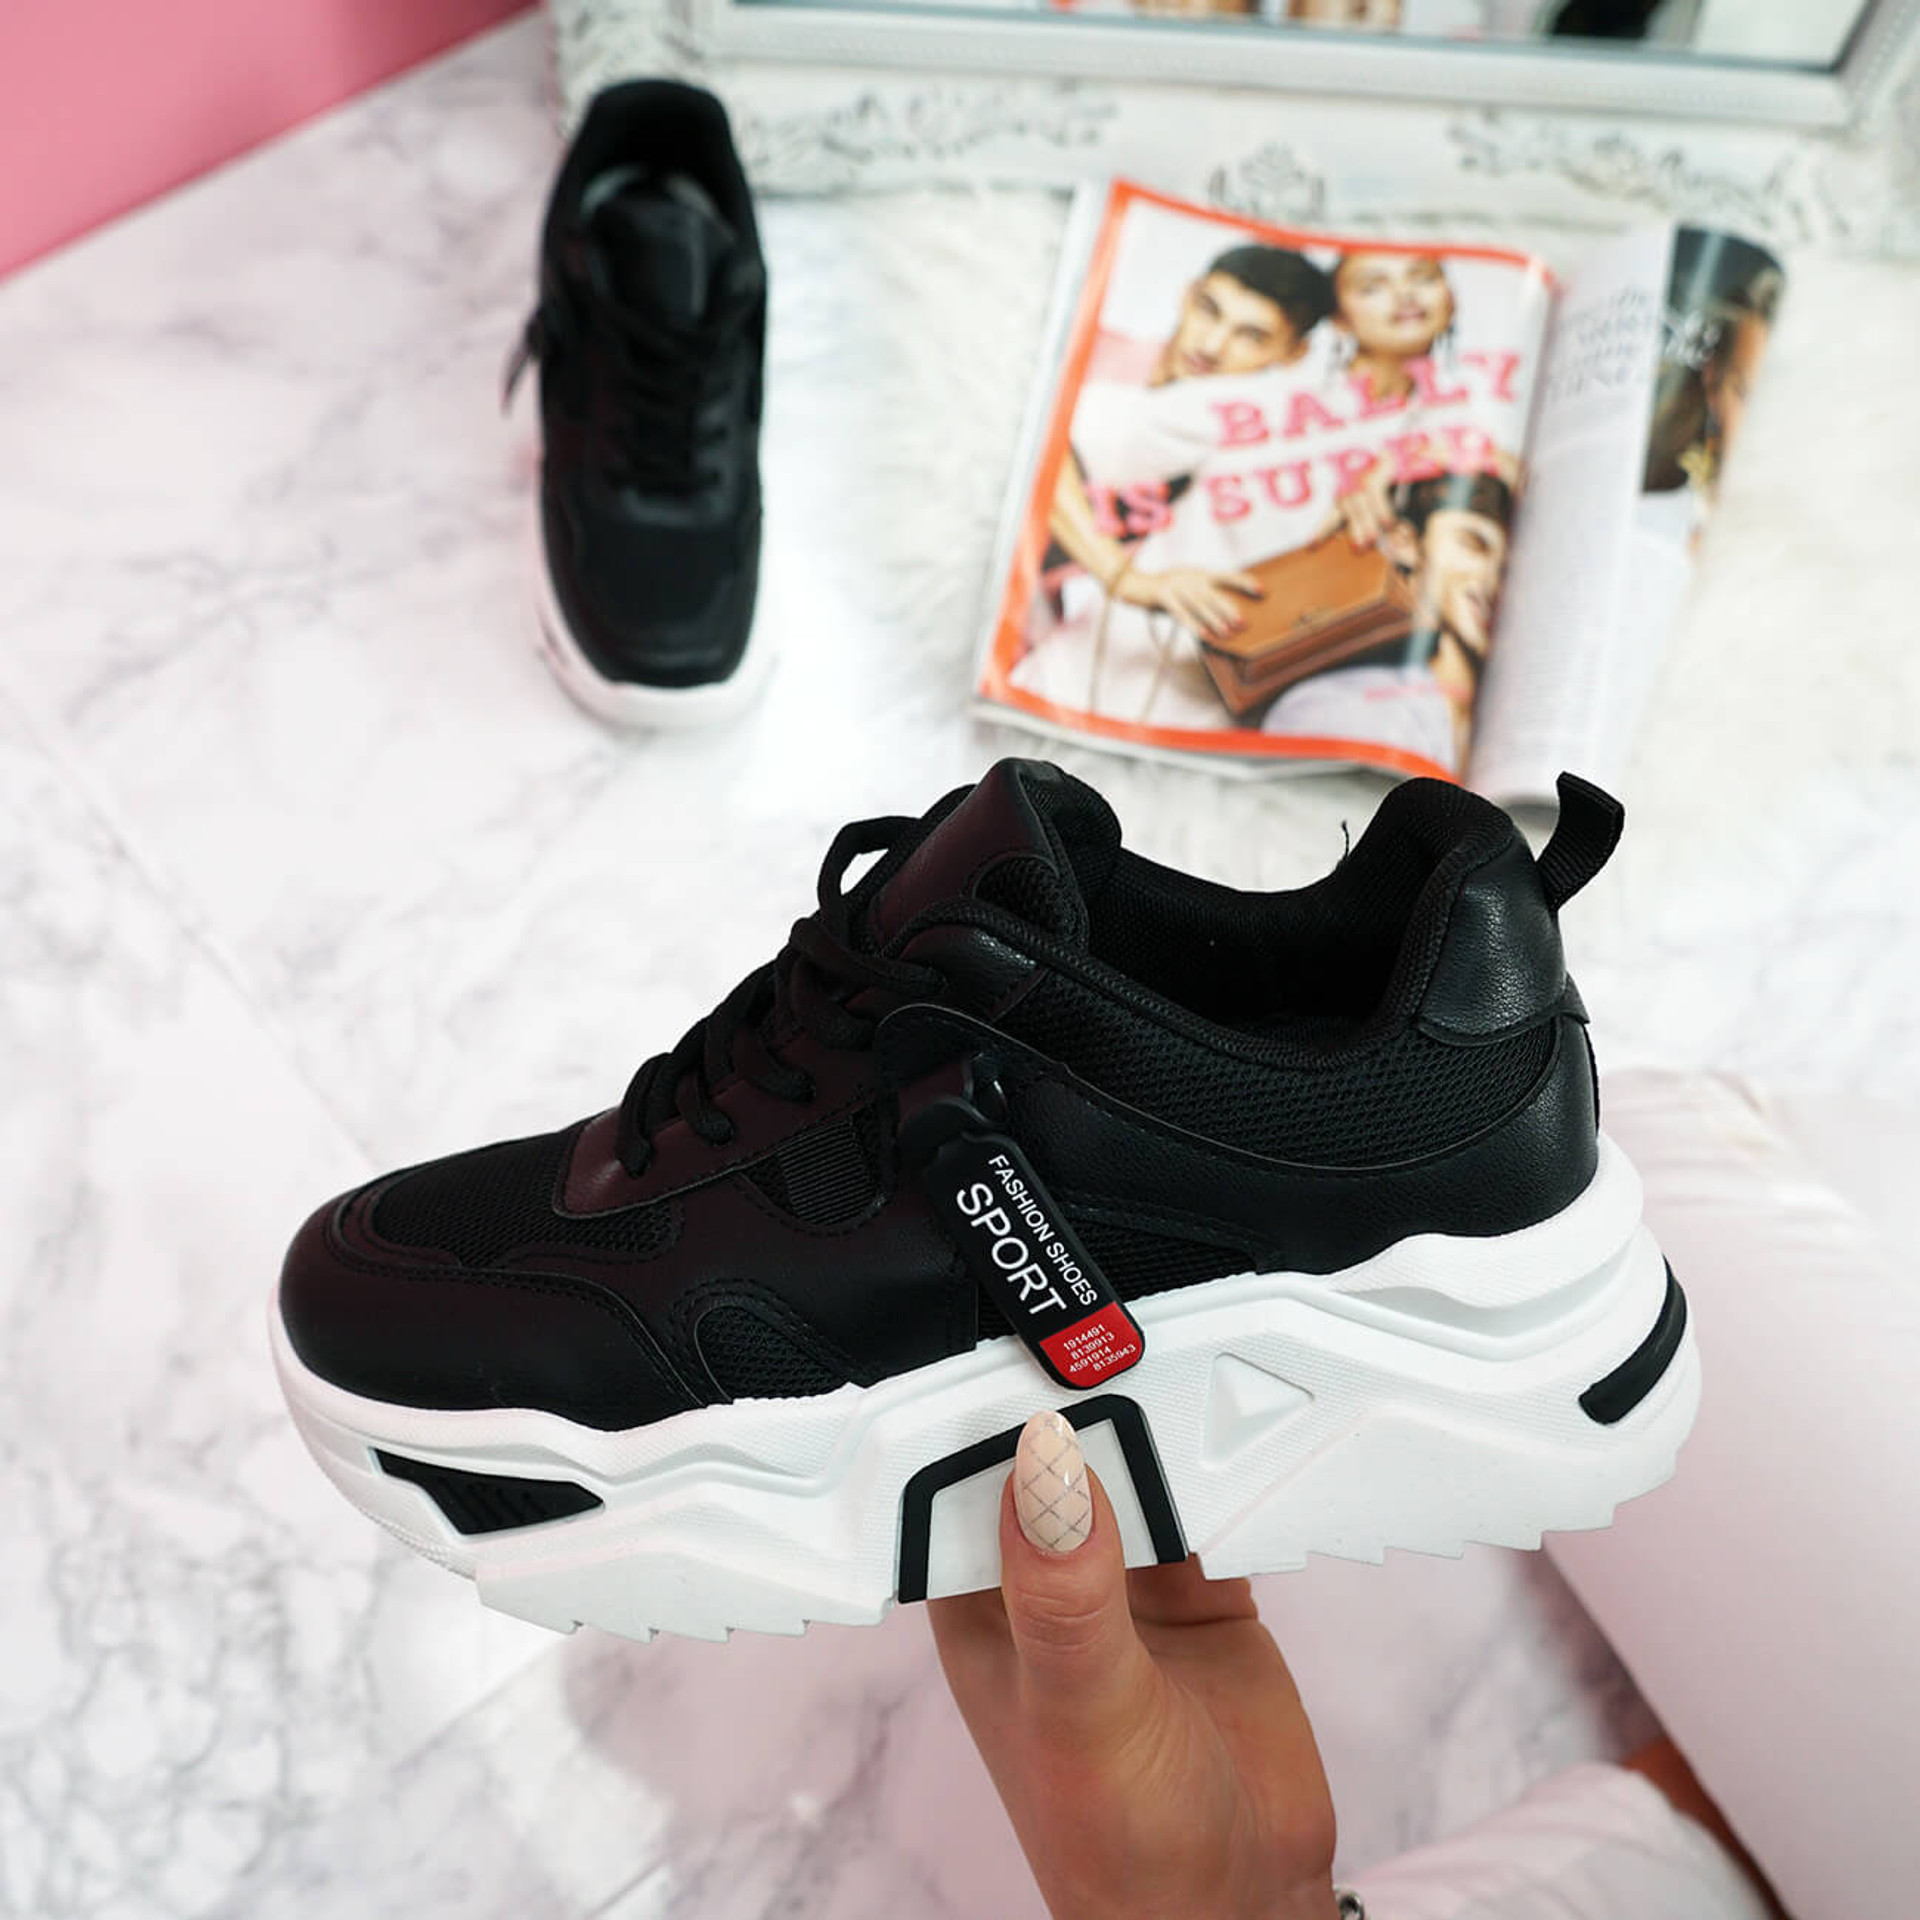 womens black and white lace-up platform trainers sneakers size uk 3 4 5 6 7 8